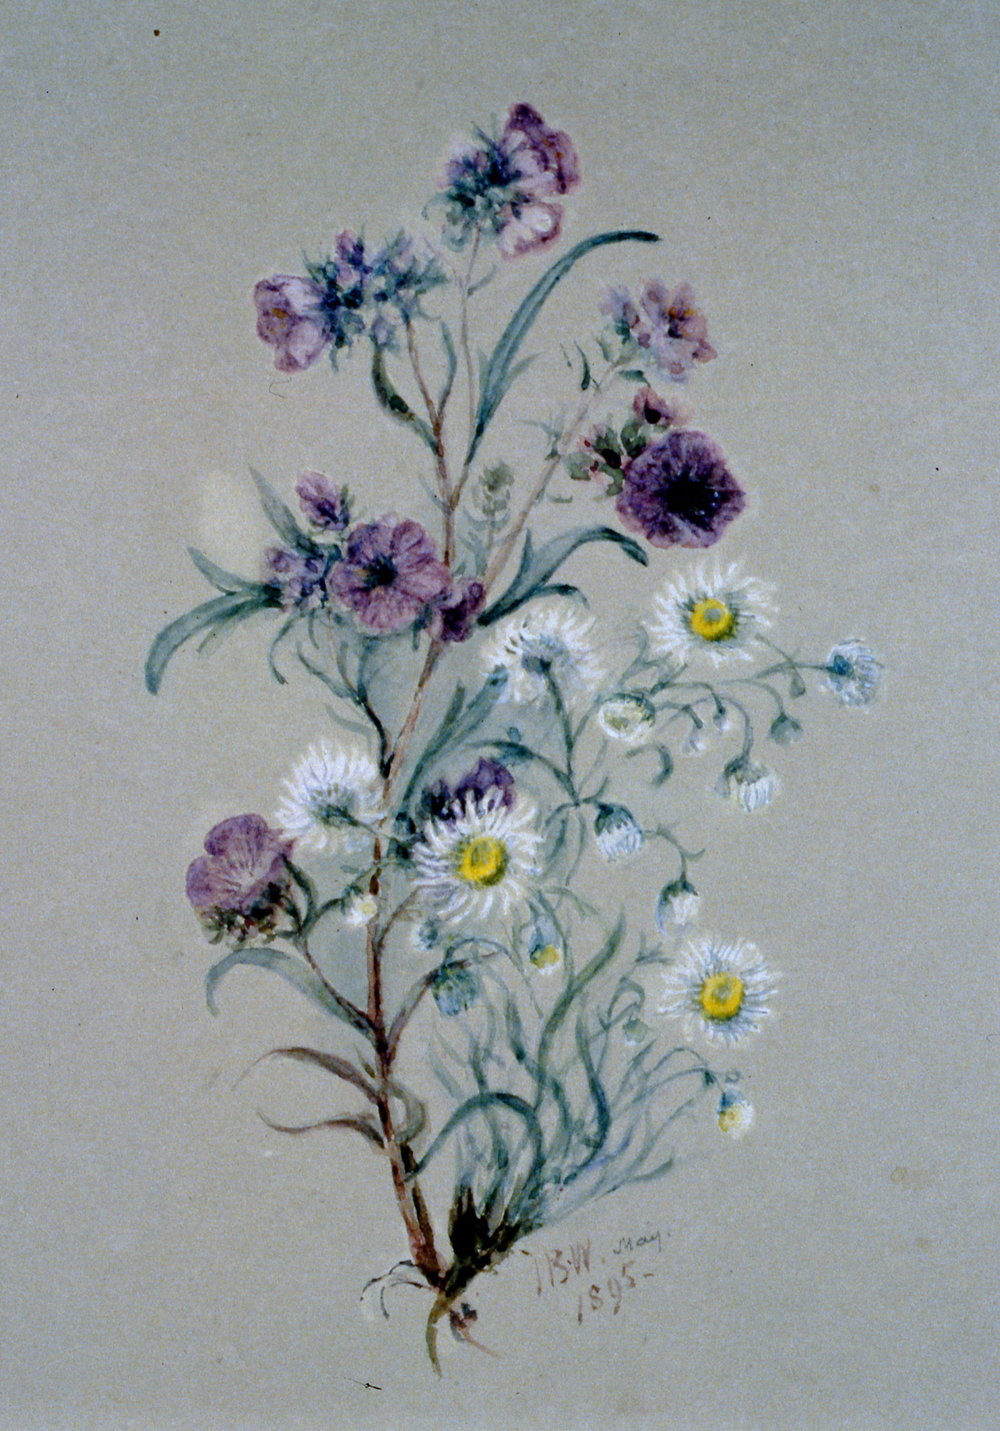 Untitled (Purple Phacilia), 1895, Julia Bullock-Webster, watercolour on paper, 24.9 x 35.5 cm, 1983.02.22.  Gift of Mrs. Barbara Steel.